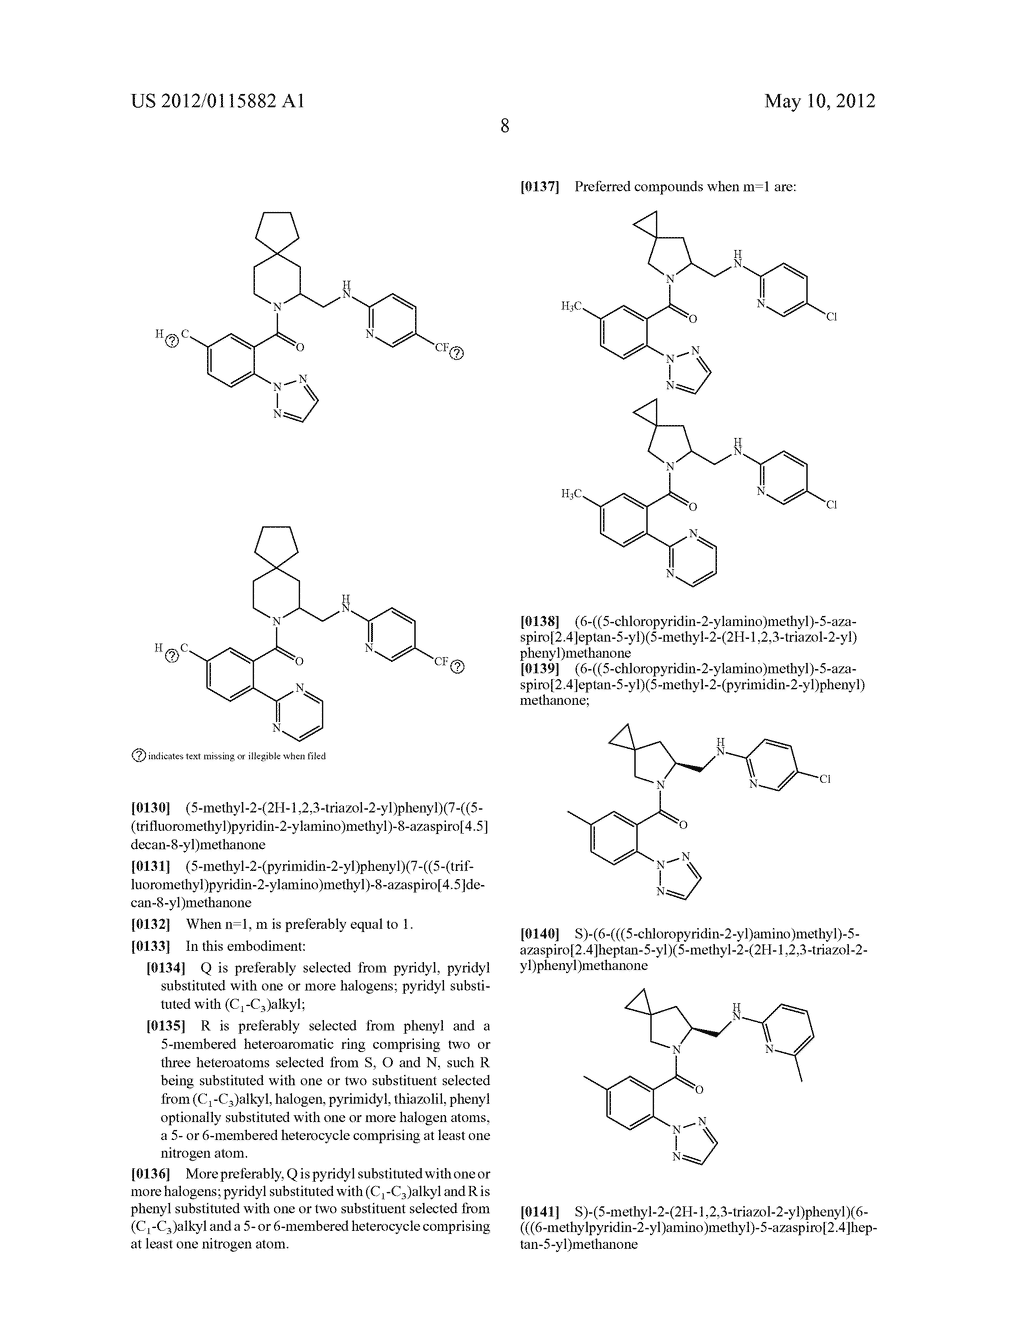 SPIRO AMINO COMPOUNDS SUITABLE FOR THE TREATMENT OF INTER ALIA SLEEP     DISORDERS AND DRUG ADDICTION - diagram, schematic, and image 09